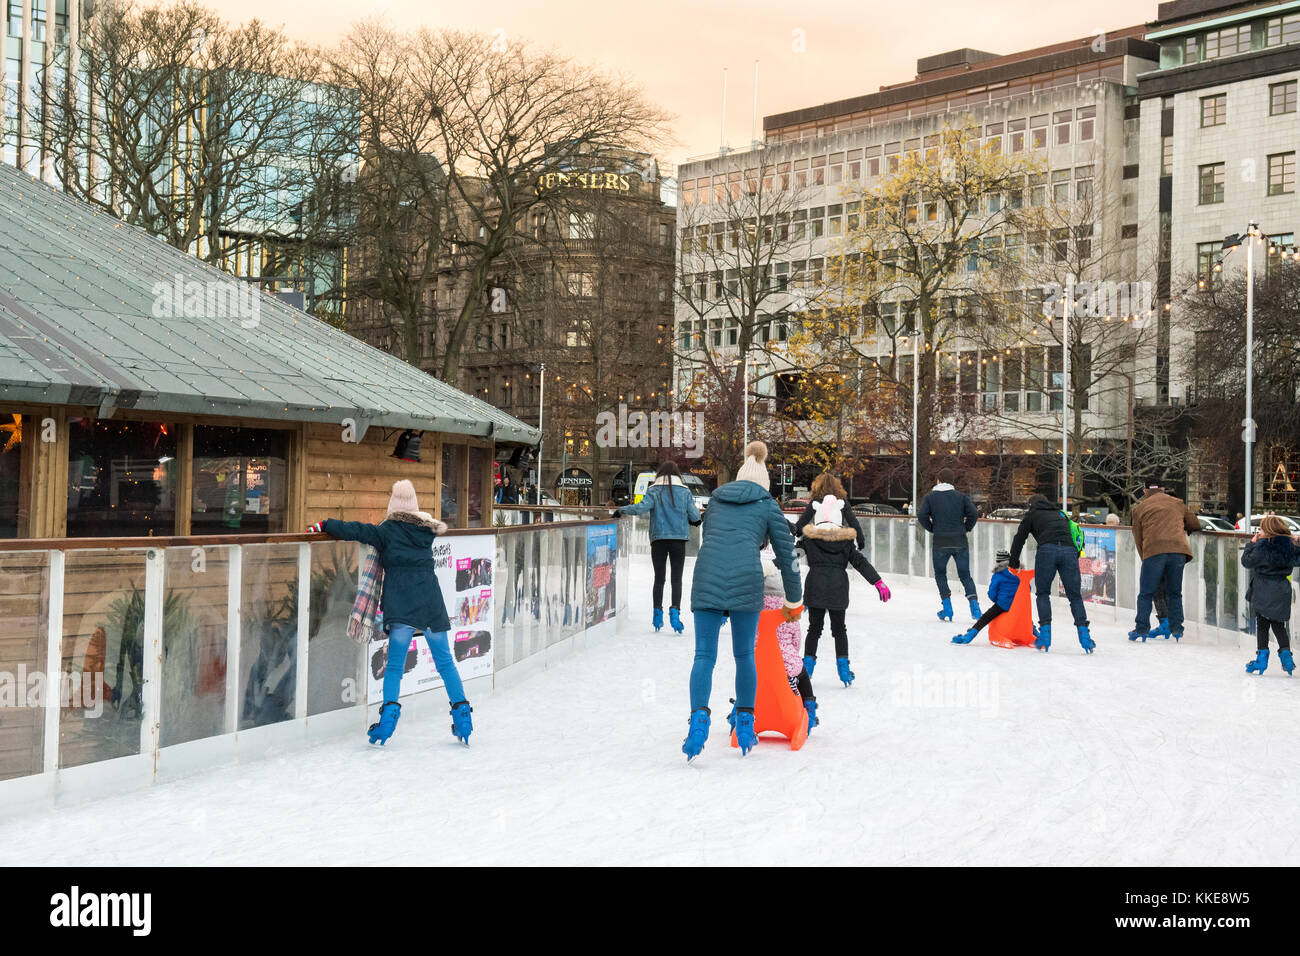 Edinburgh Christmas 2017 ice skating in St Andrew Square with Jenners store in the background, Edinburgh, Scotland, - Stock Image